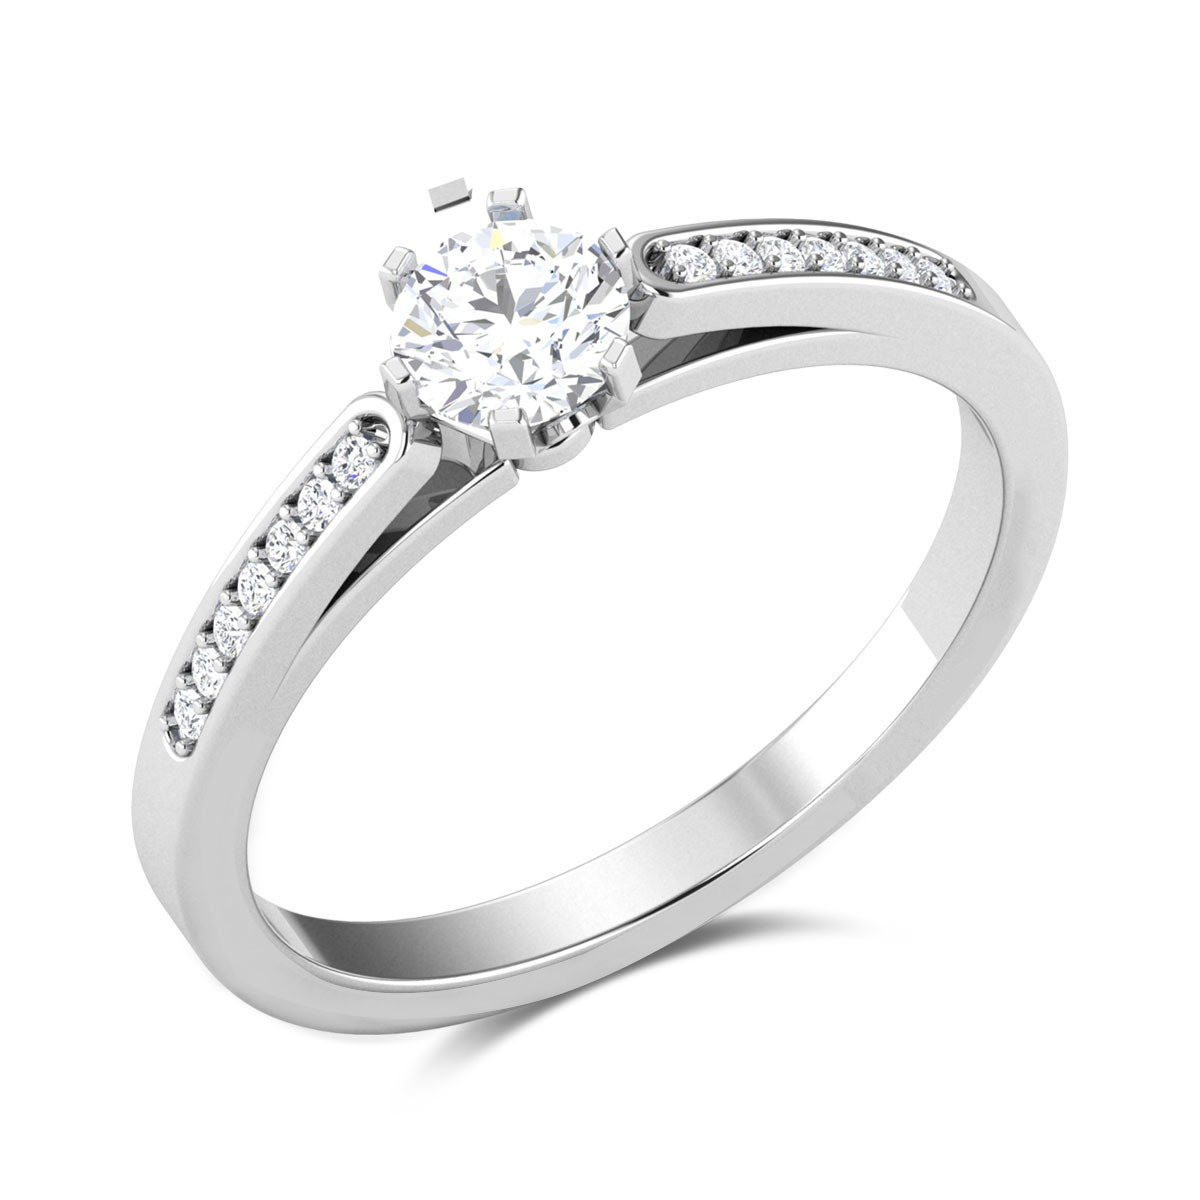 Rainbow Wrap 6 Prong Solitaire Ring